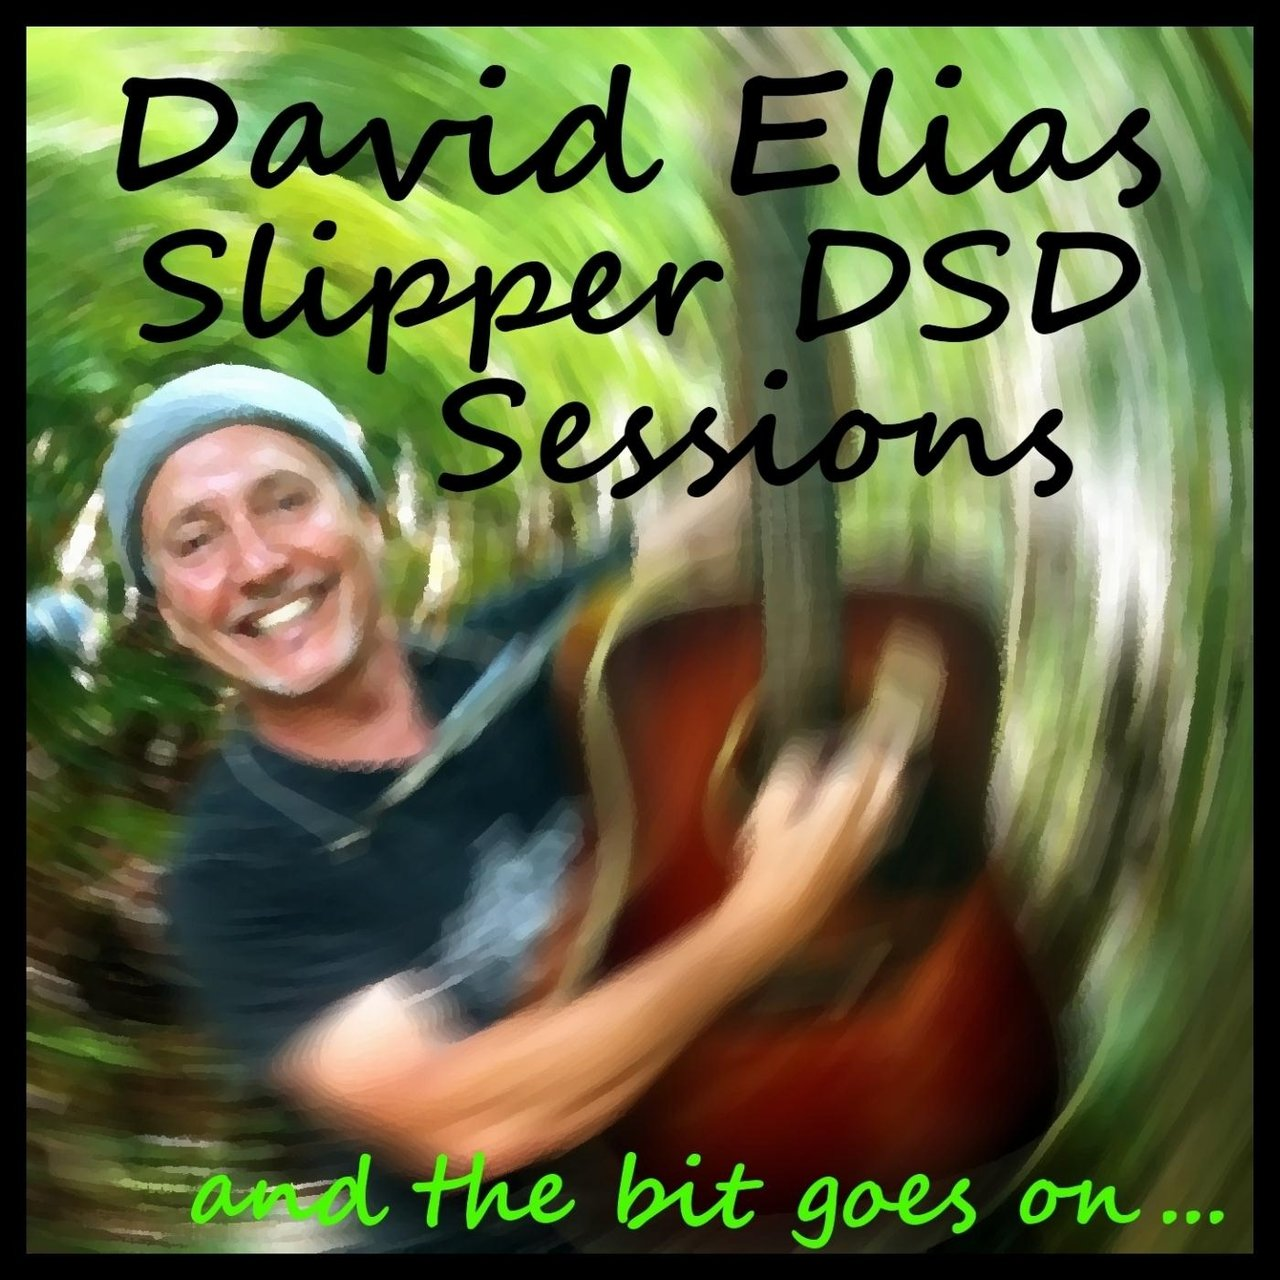 Slipper DSD Sessions: And The Bit Goes On